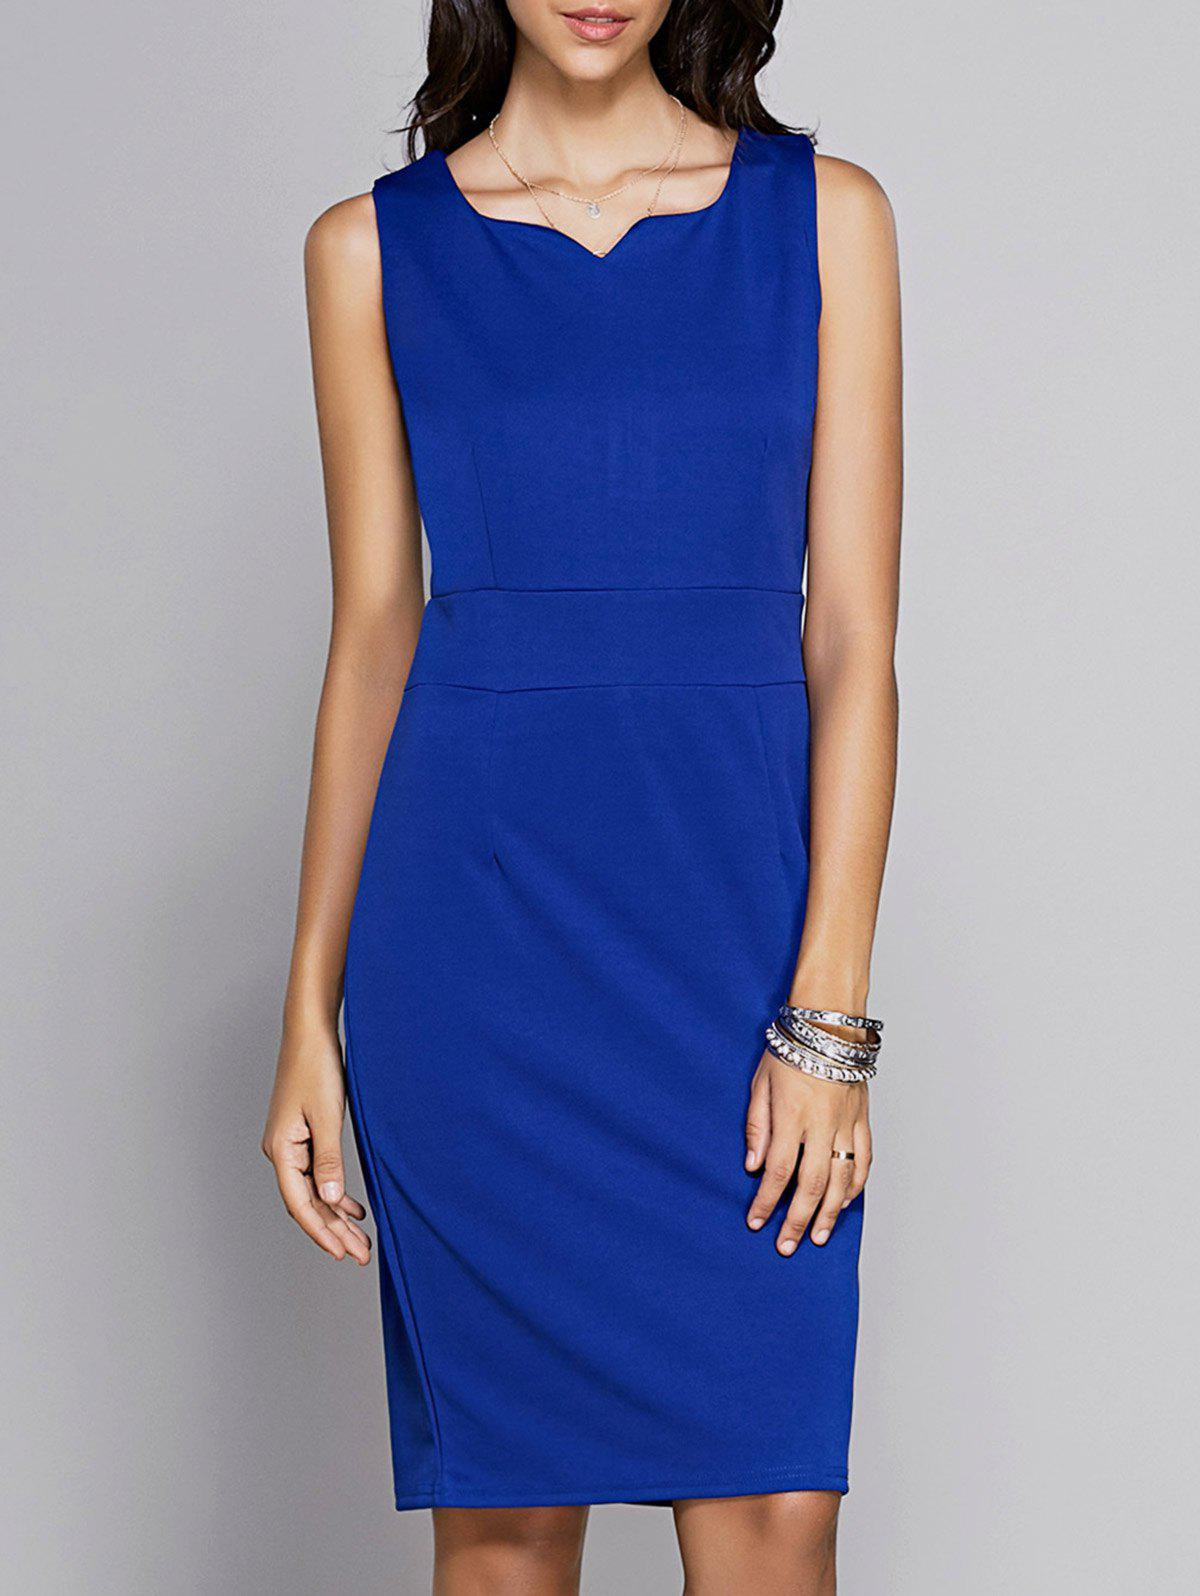 Trendy Women's Sleeveless Pure Color Knee-Length Dress - SAPPHIRE BLUE 2XL